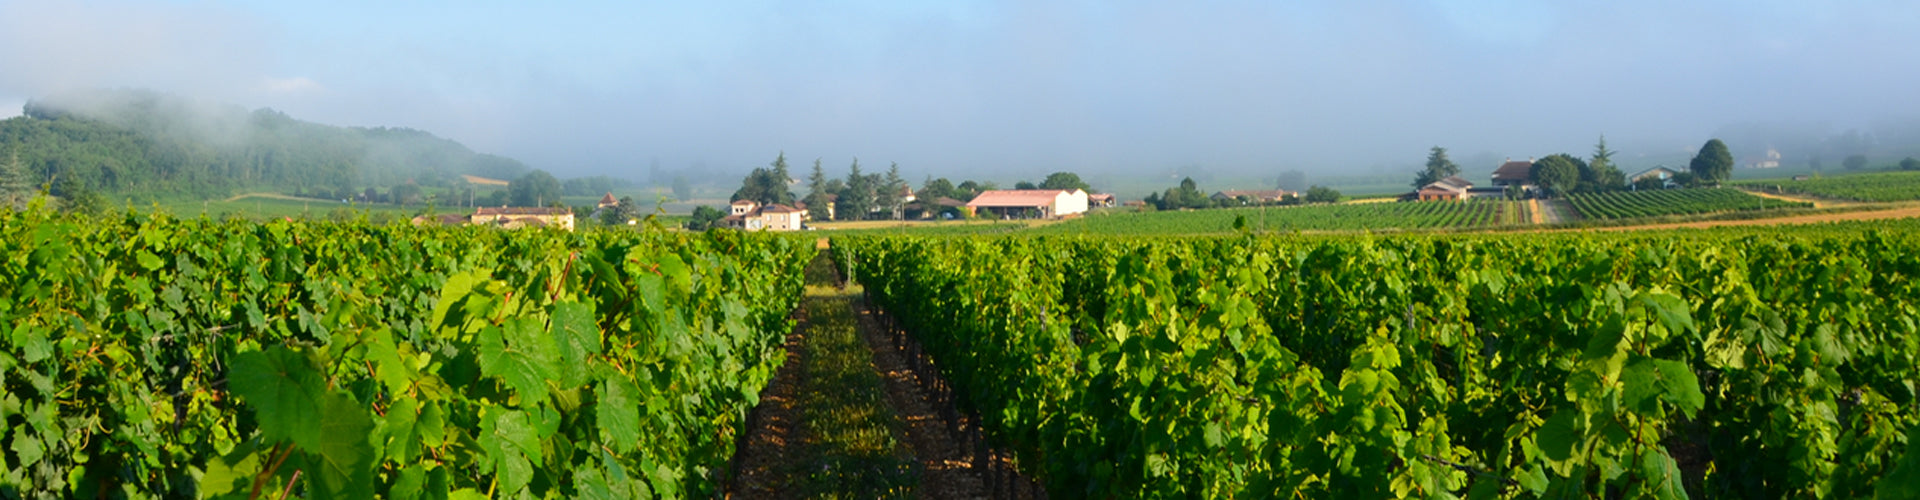 The vineyards of Château du Cèdre in Cahors, France